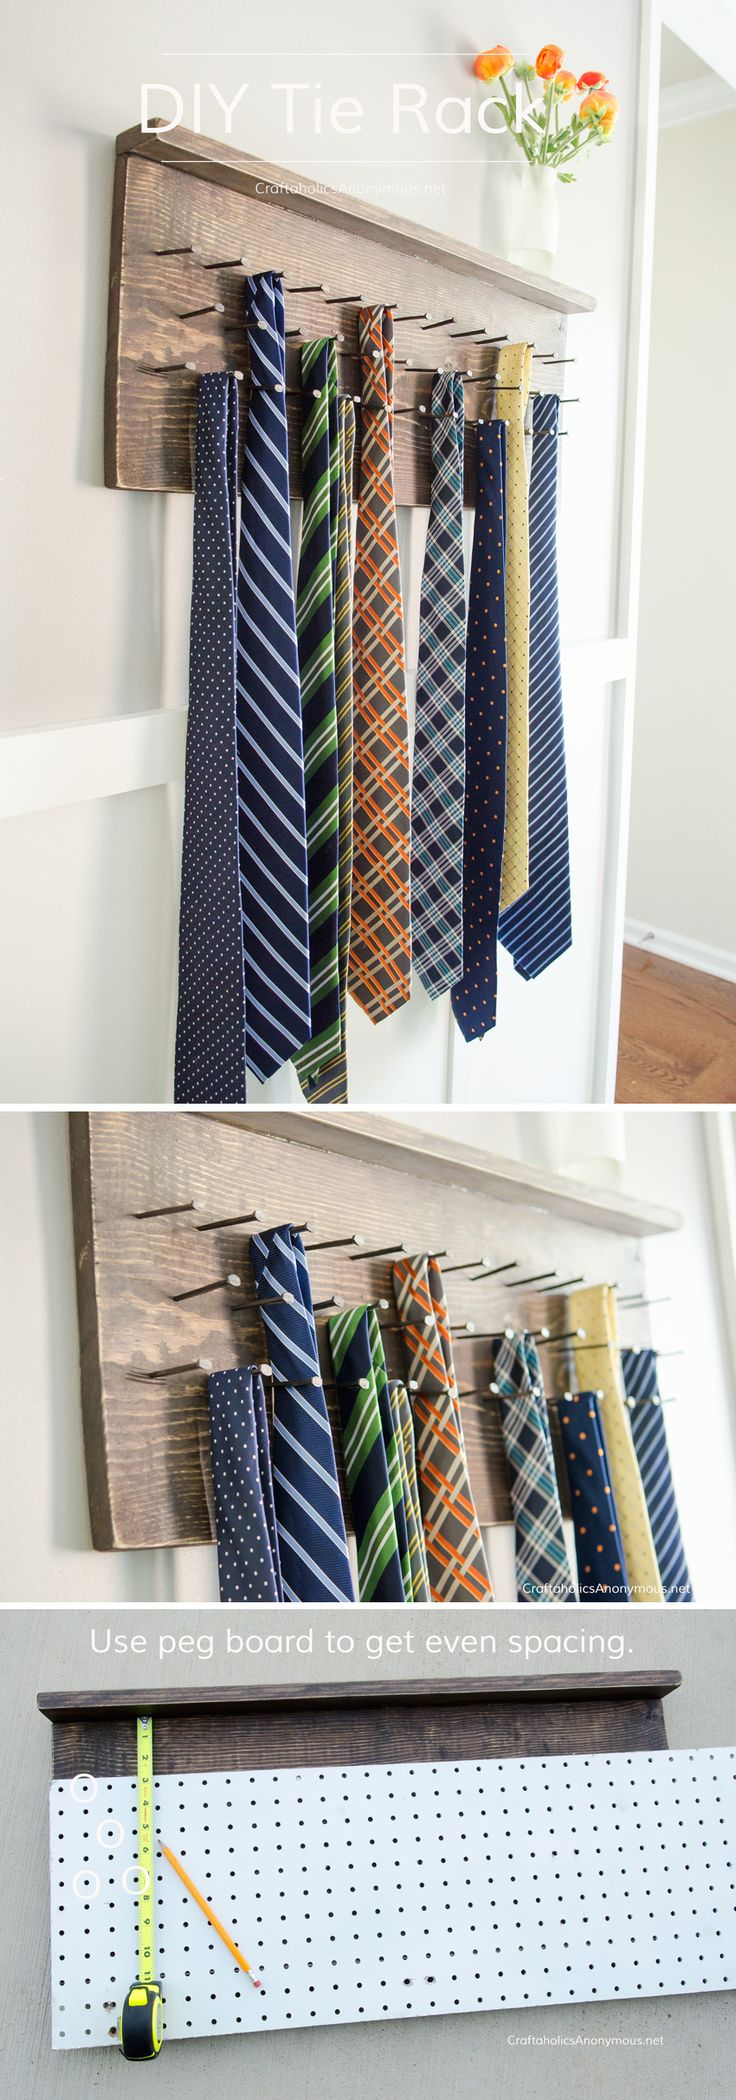 Diy Tie Rack Tutorial